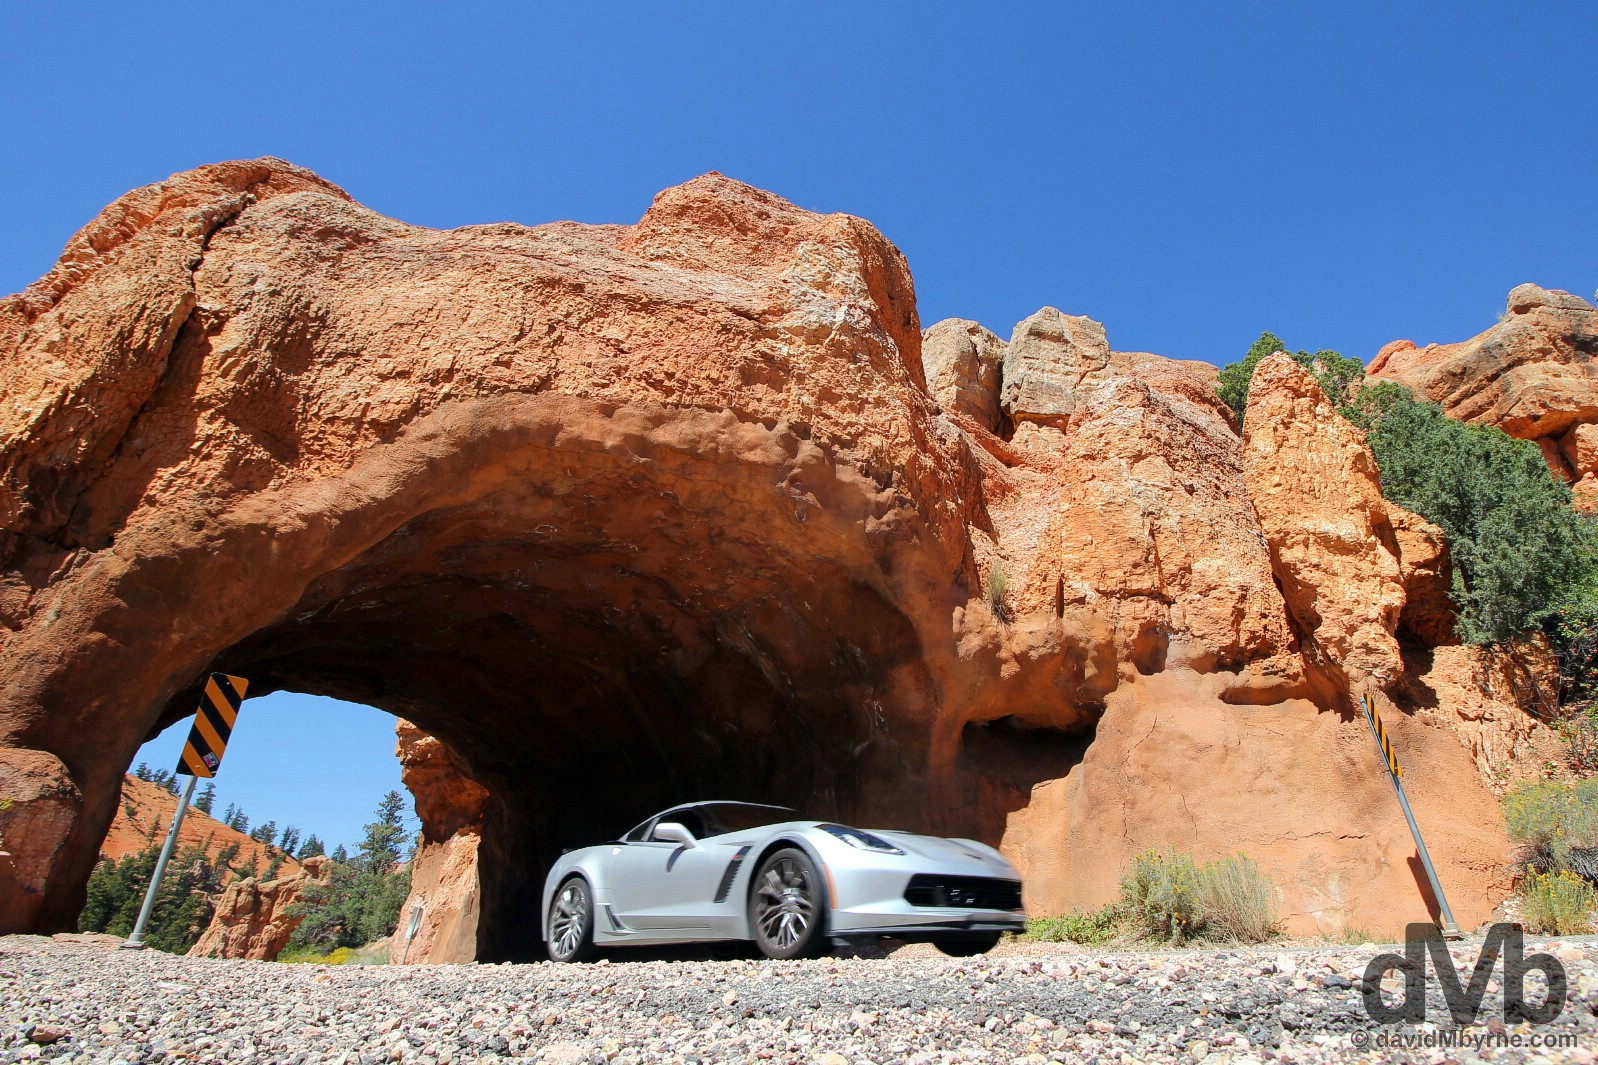 On the All-American Scenic Byway 12 in Red Canyon, southern Utah, USA. September 8, 2016.